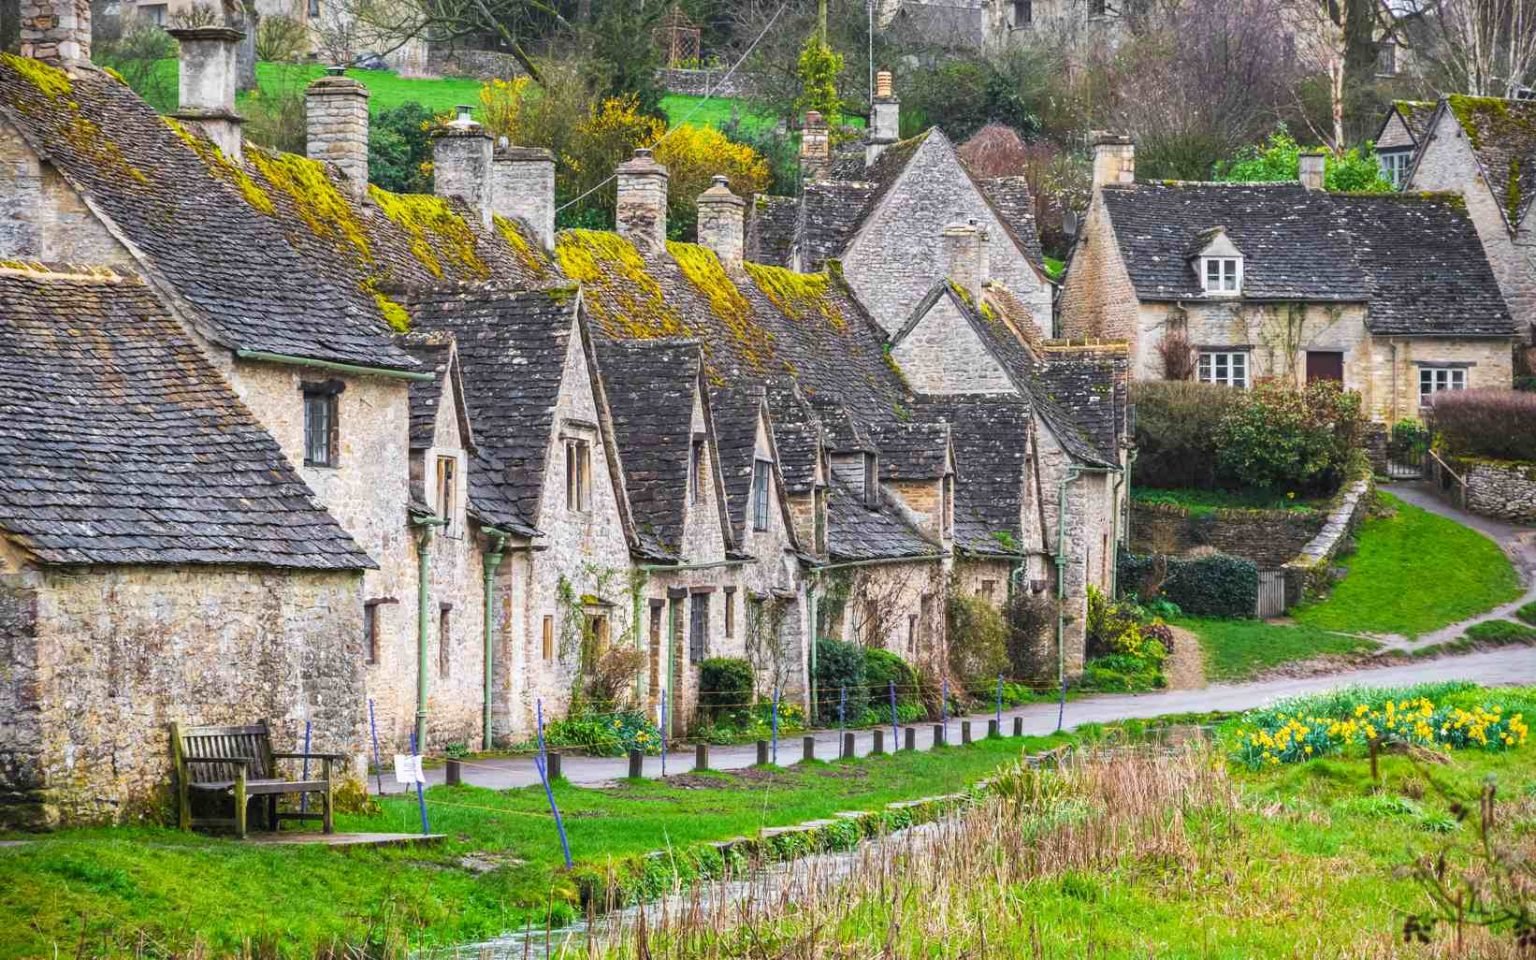 Cotswold stone cottages in Bibury wg